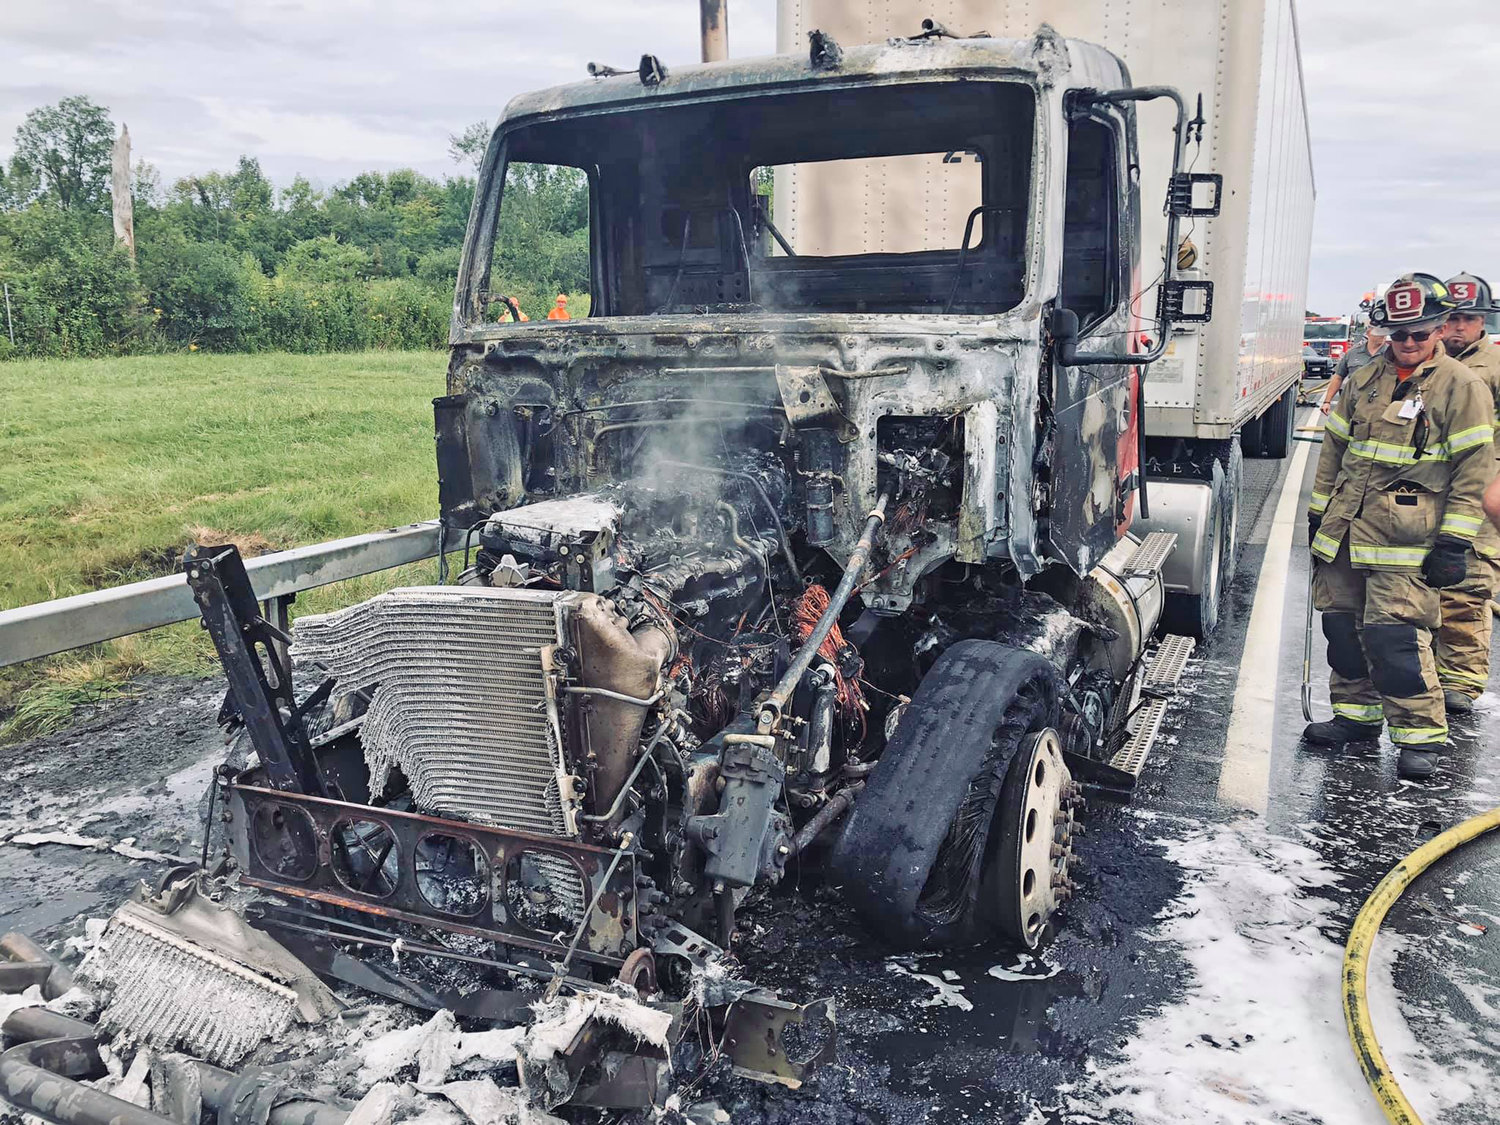 TRUCK DESTROYED — The smoldering wreckage of a tractor trailer fire on the Thruway in Westmoreland Tuesday, Aug. 27. Fire officials said no one was injured.